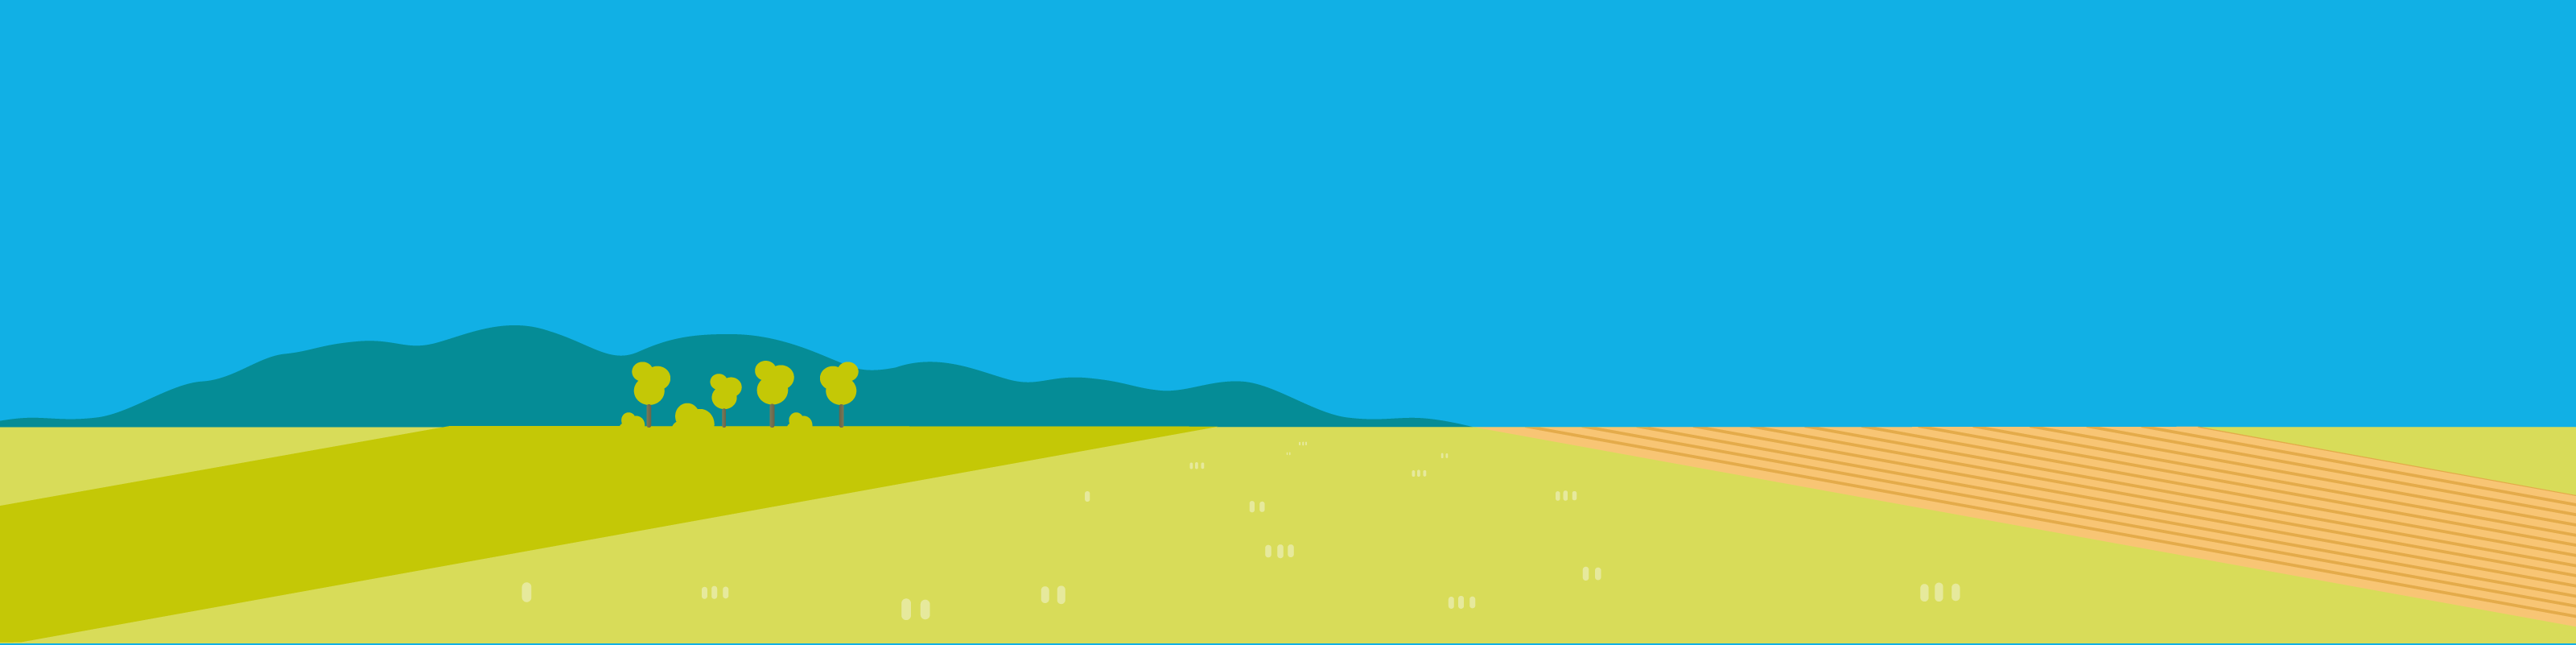 Landschaft Illustration, Animation, Erklärvideo, Motion Design | CC Buchner